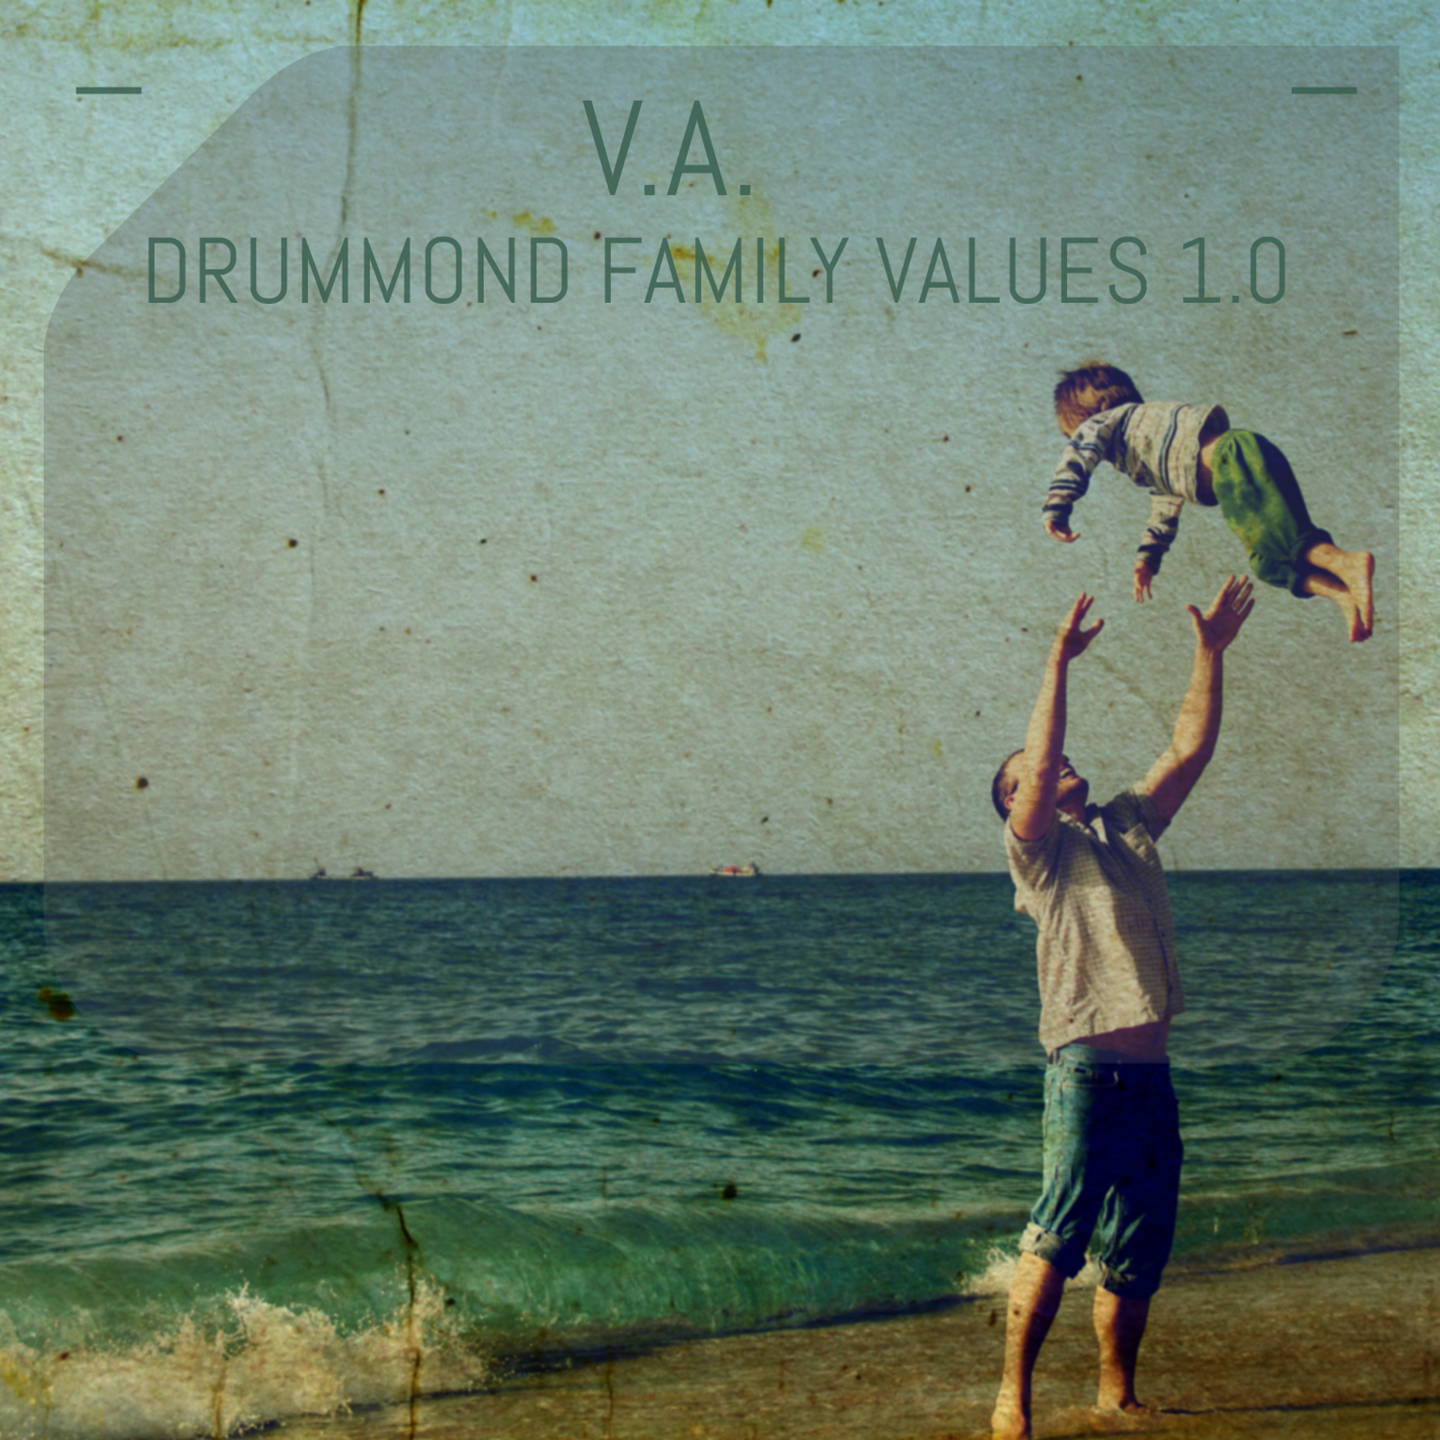 DMD021 - V.A. - Drummond Family Values 1.0